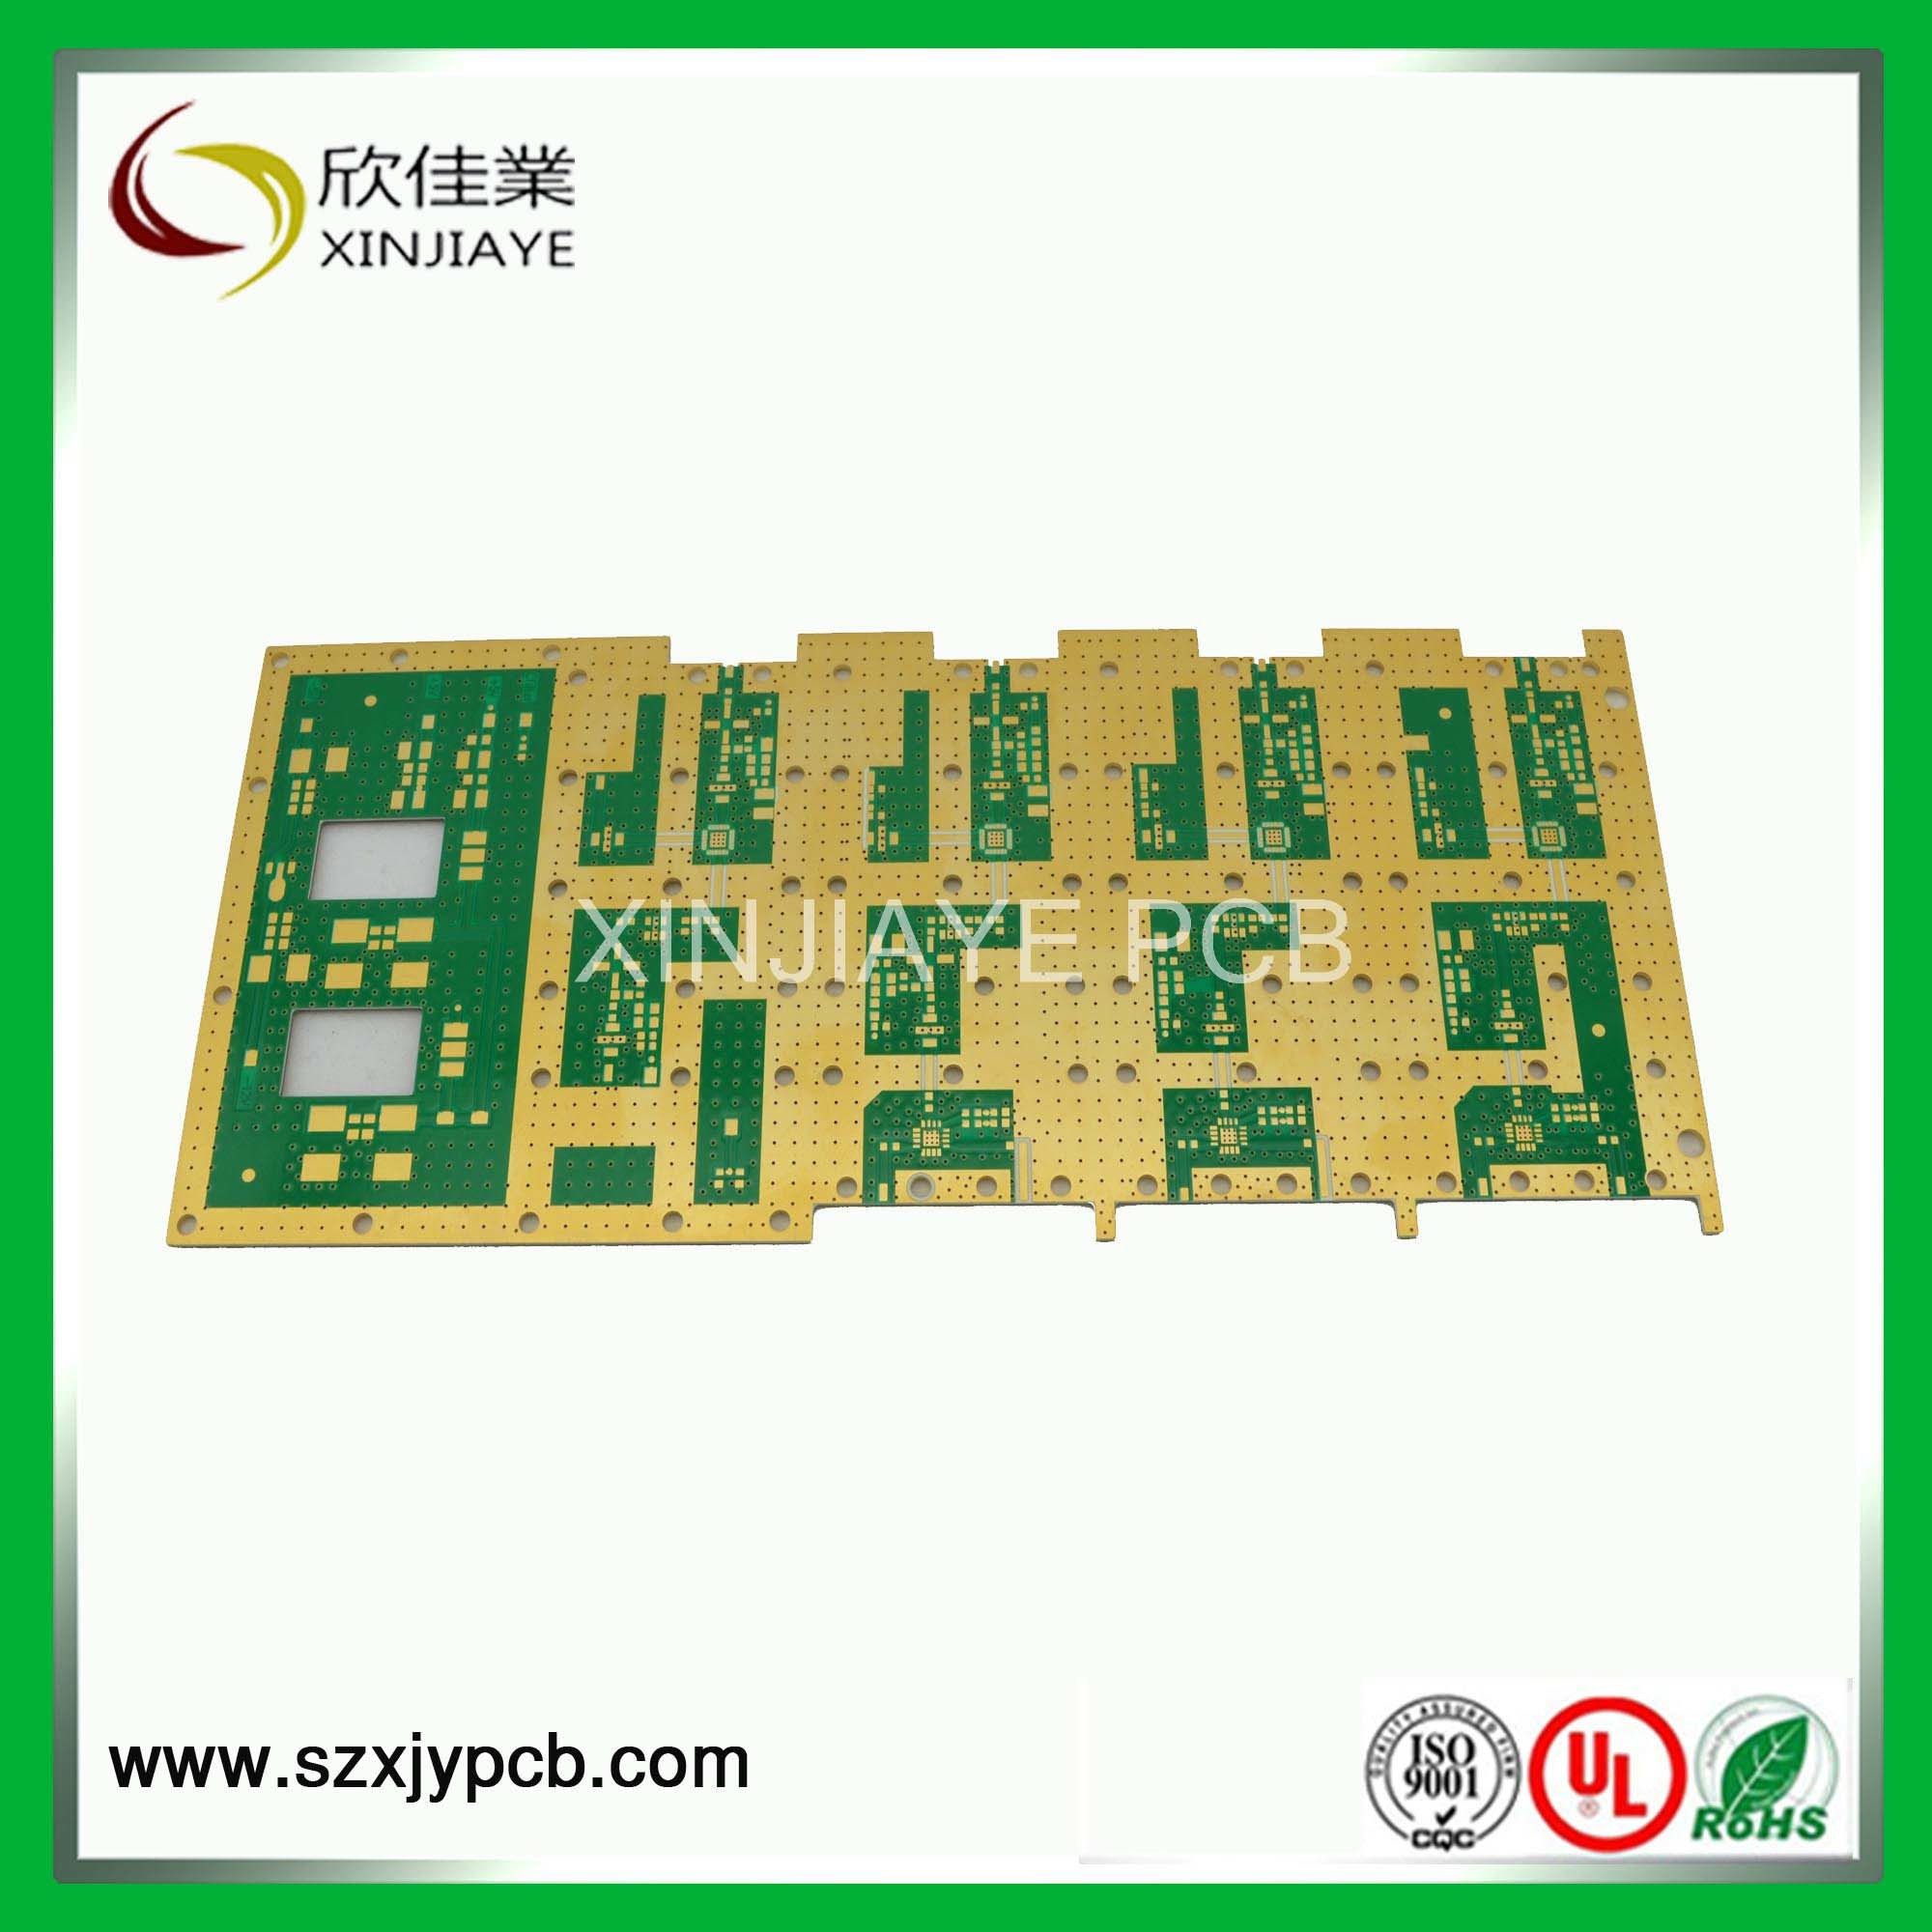 High Frequency Teflon Pcb China Printed Circuit Board Factory Layout Services Assembly For Sale